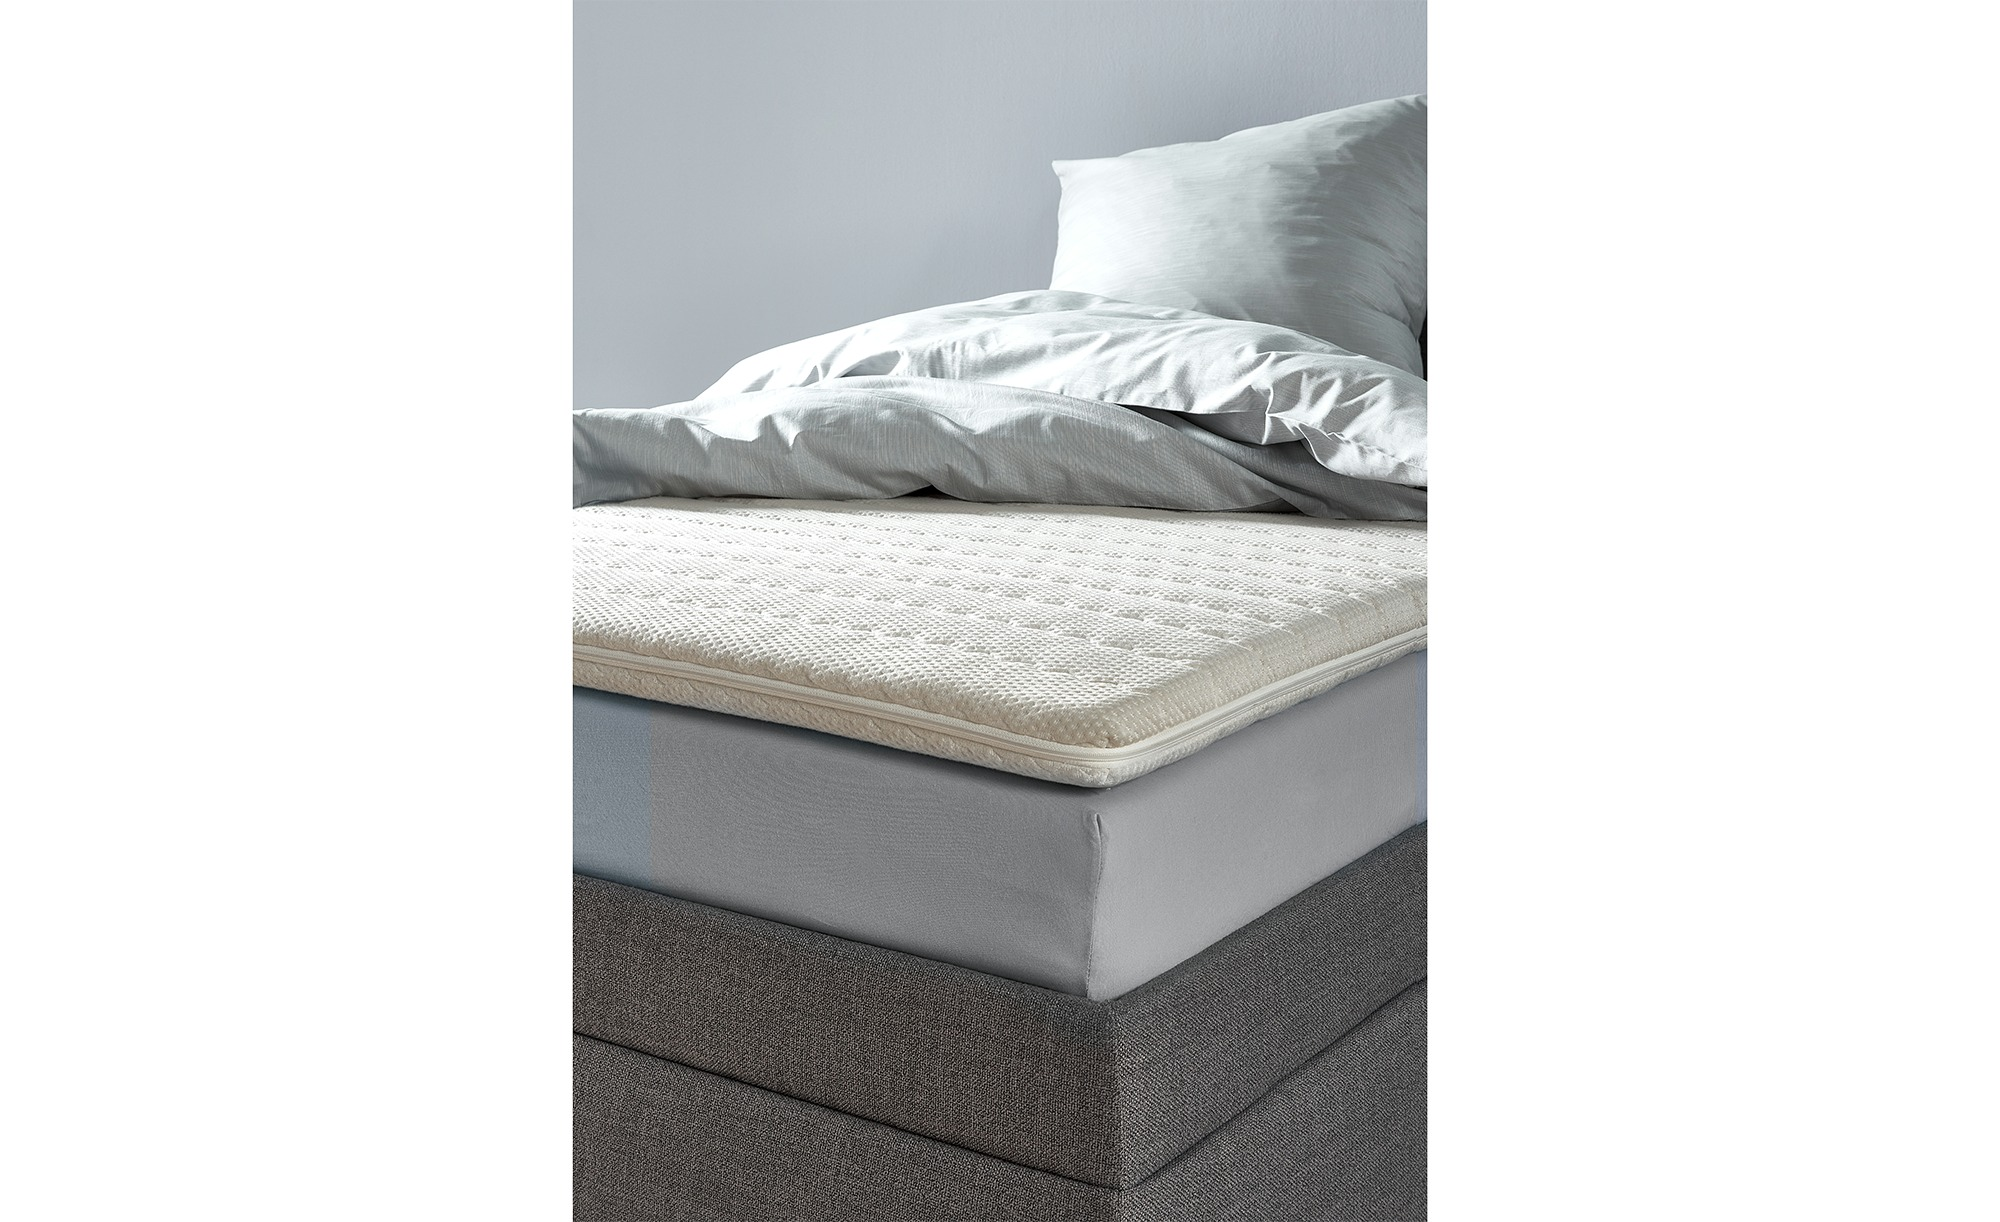 Topper Bett Matratzentopper Top Gel Topper | 90 Cm, 200 Cm